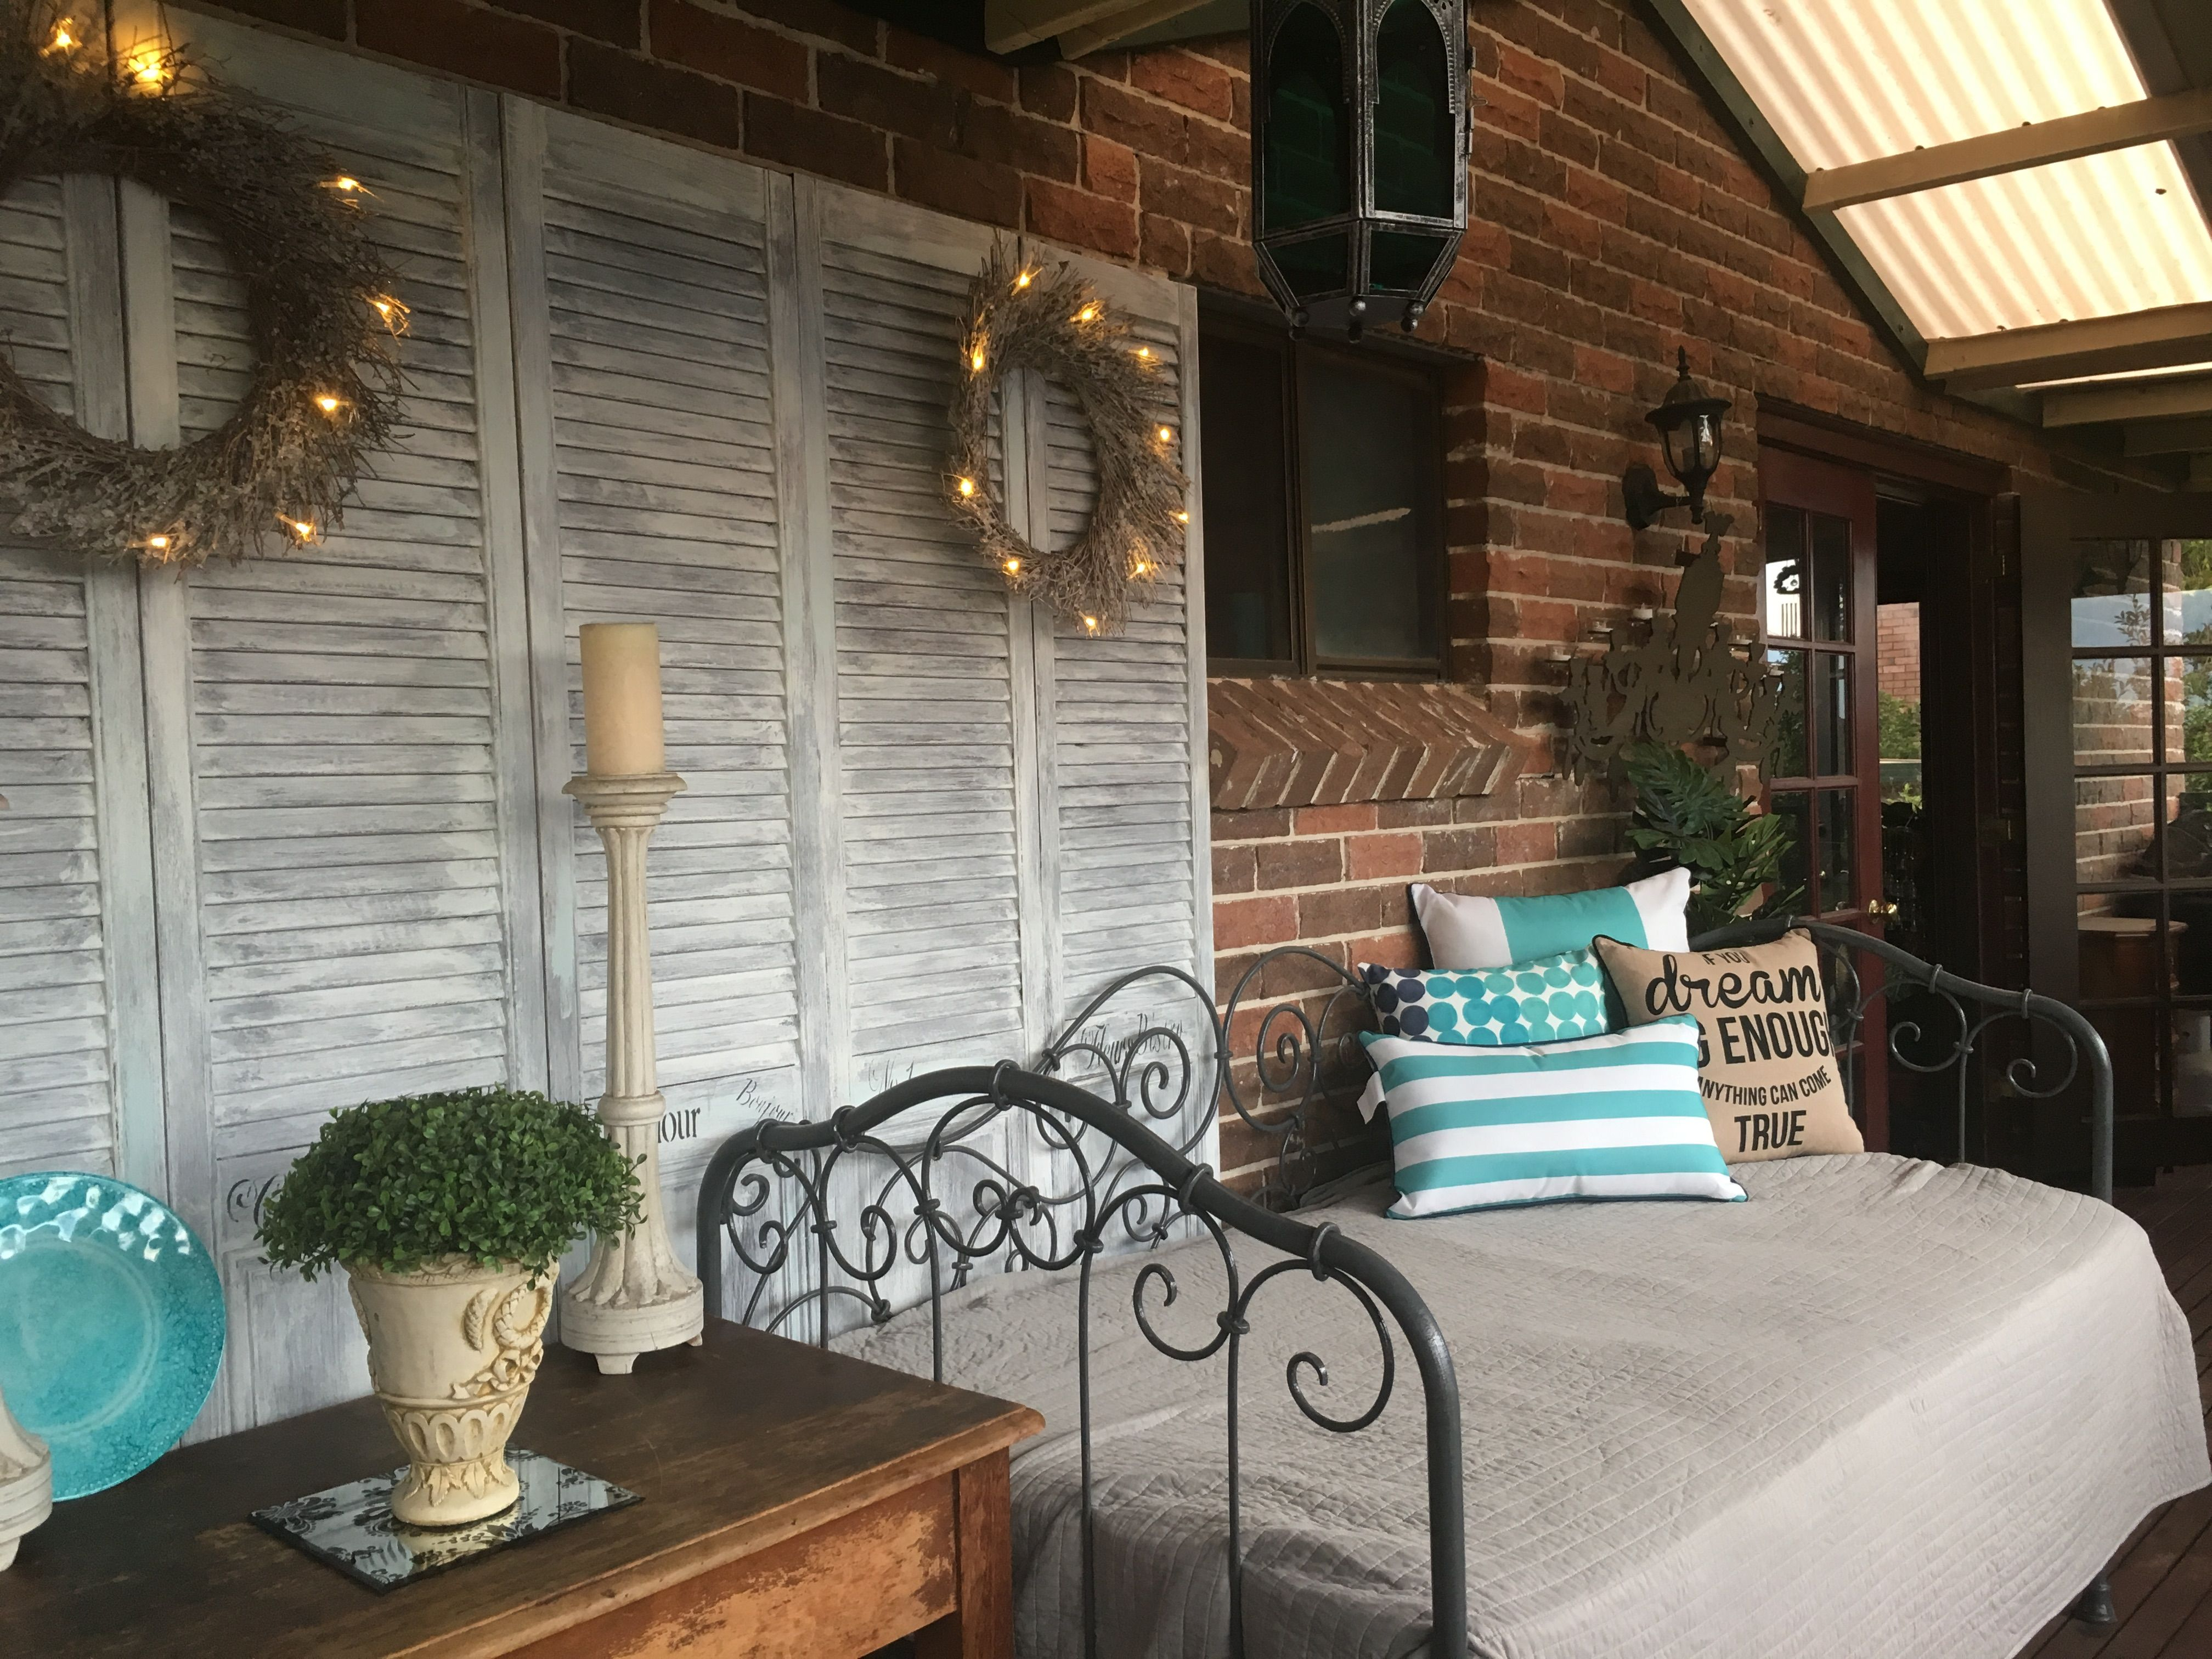 French fixer upper style patio